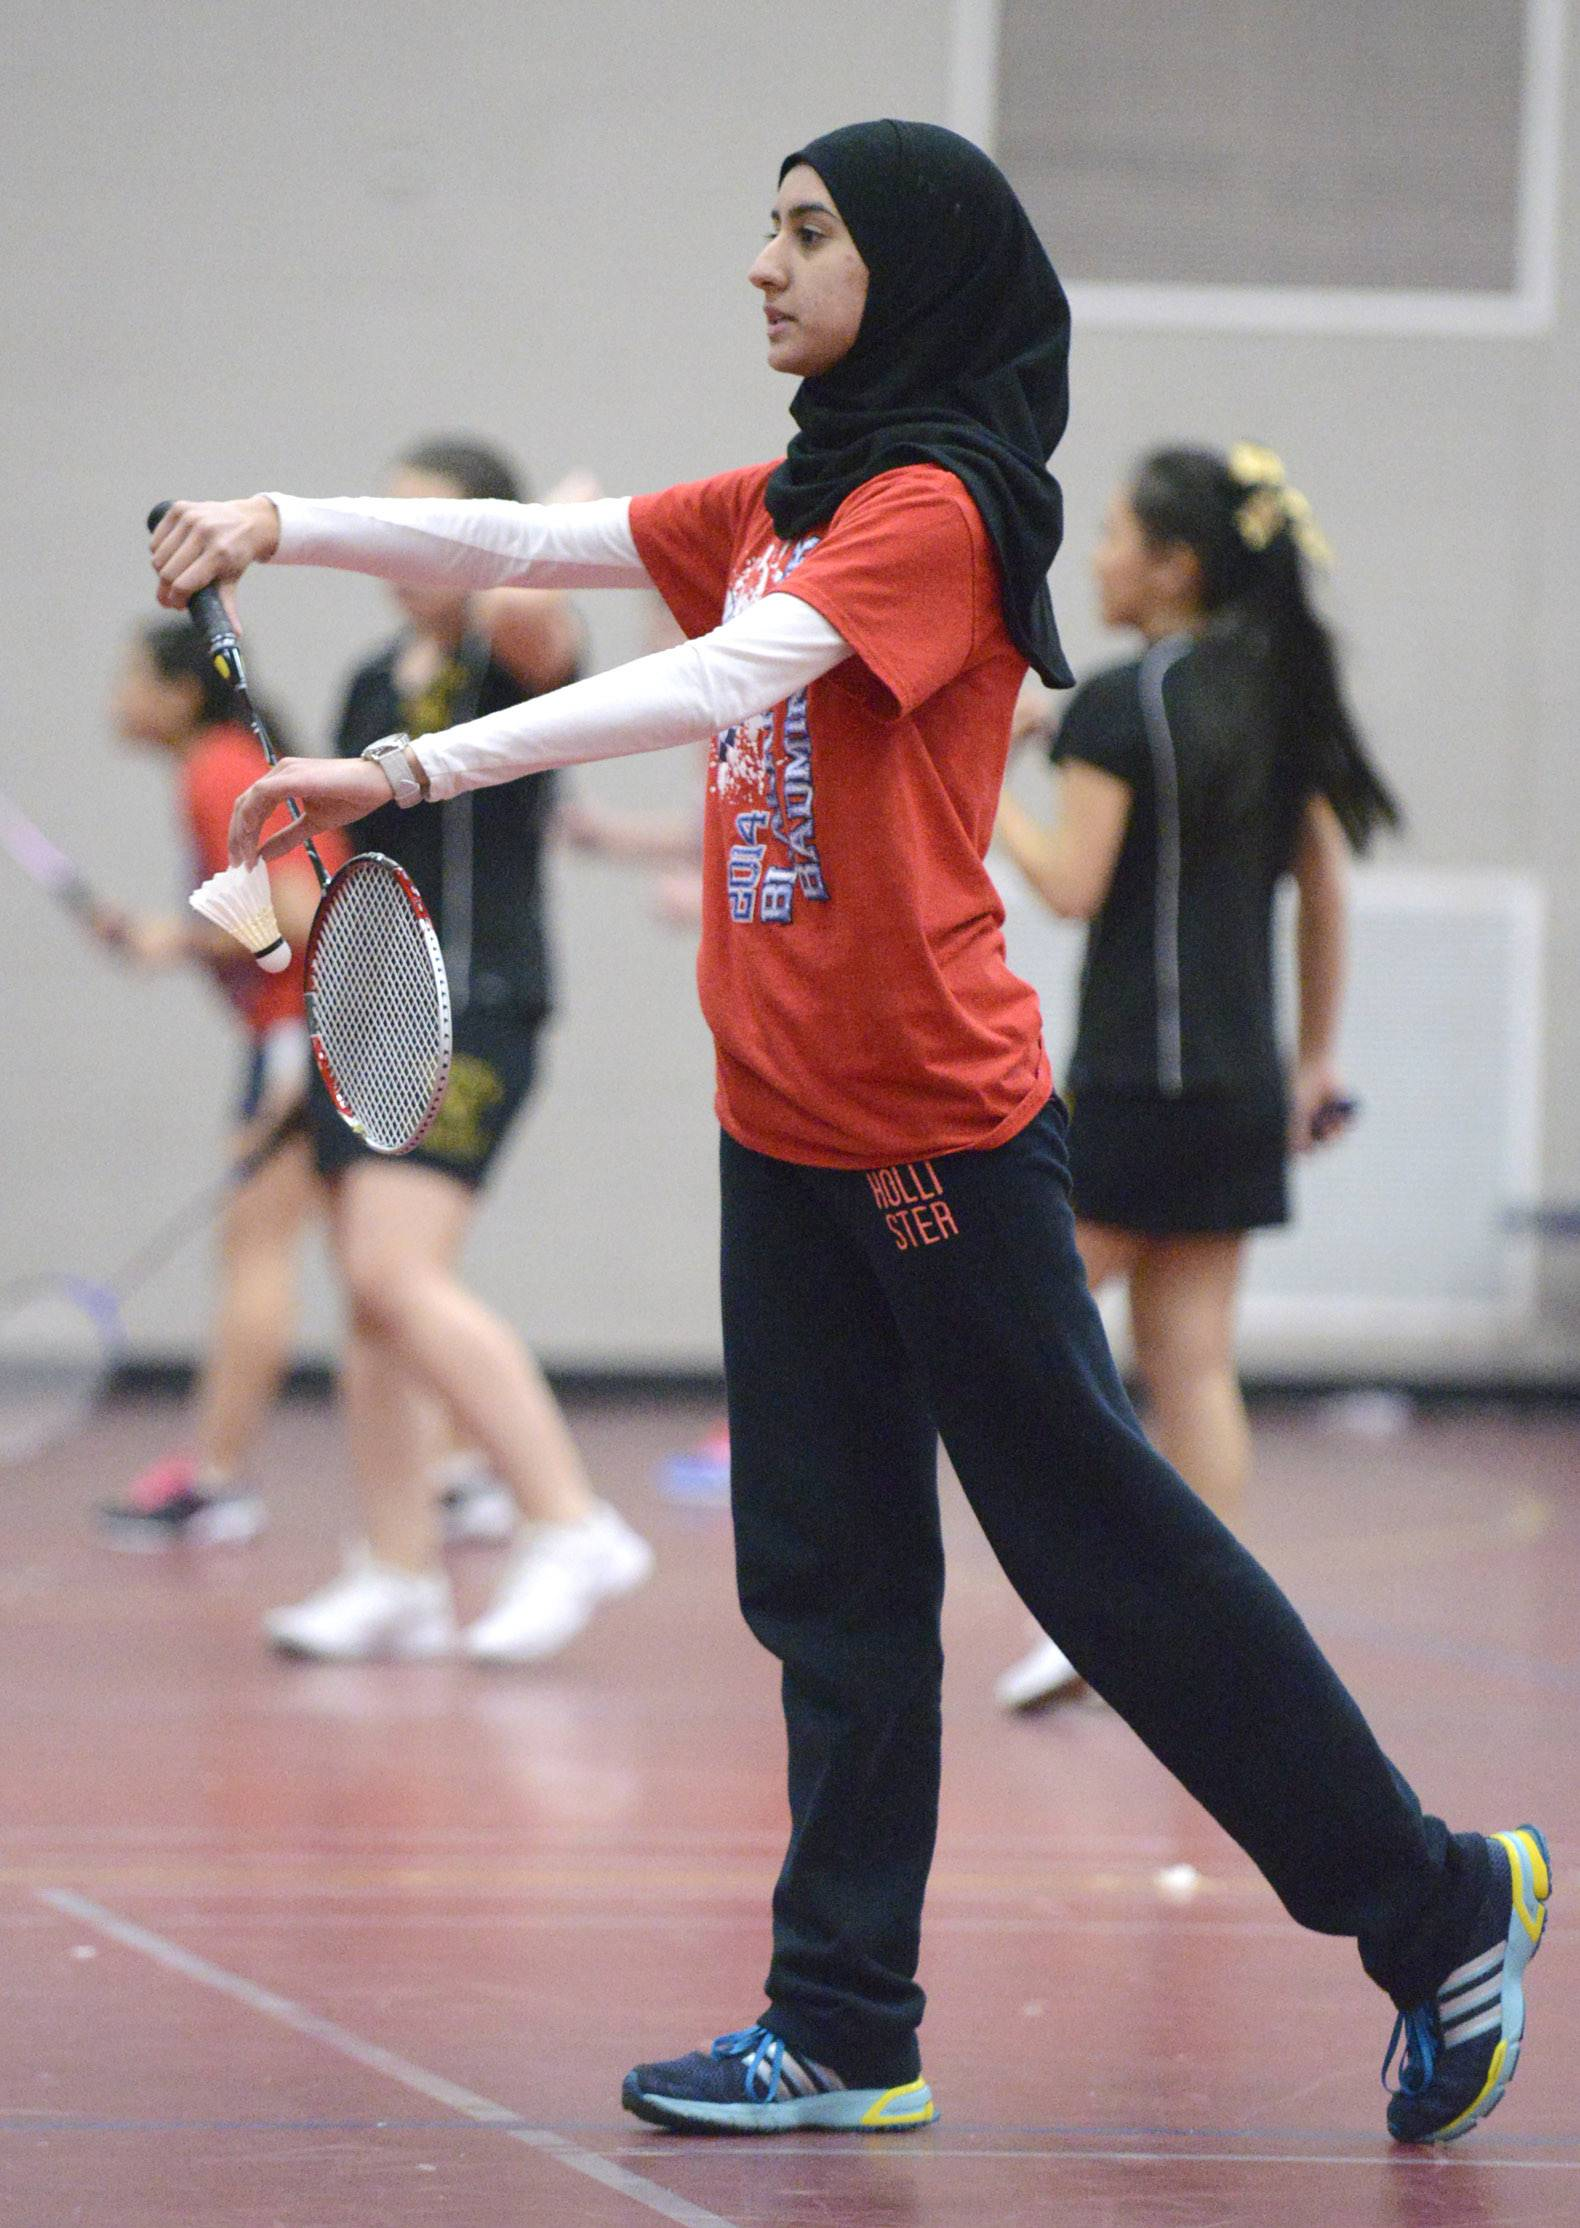 West Aurora's Hiba Shahid serves to Metea Valley in the first doubles match at West Aurora High School on Tuesday, March 25.